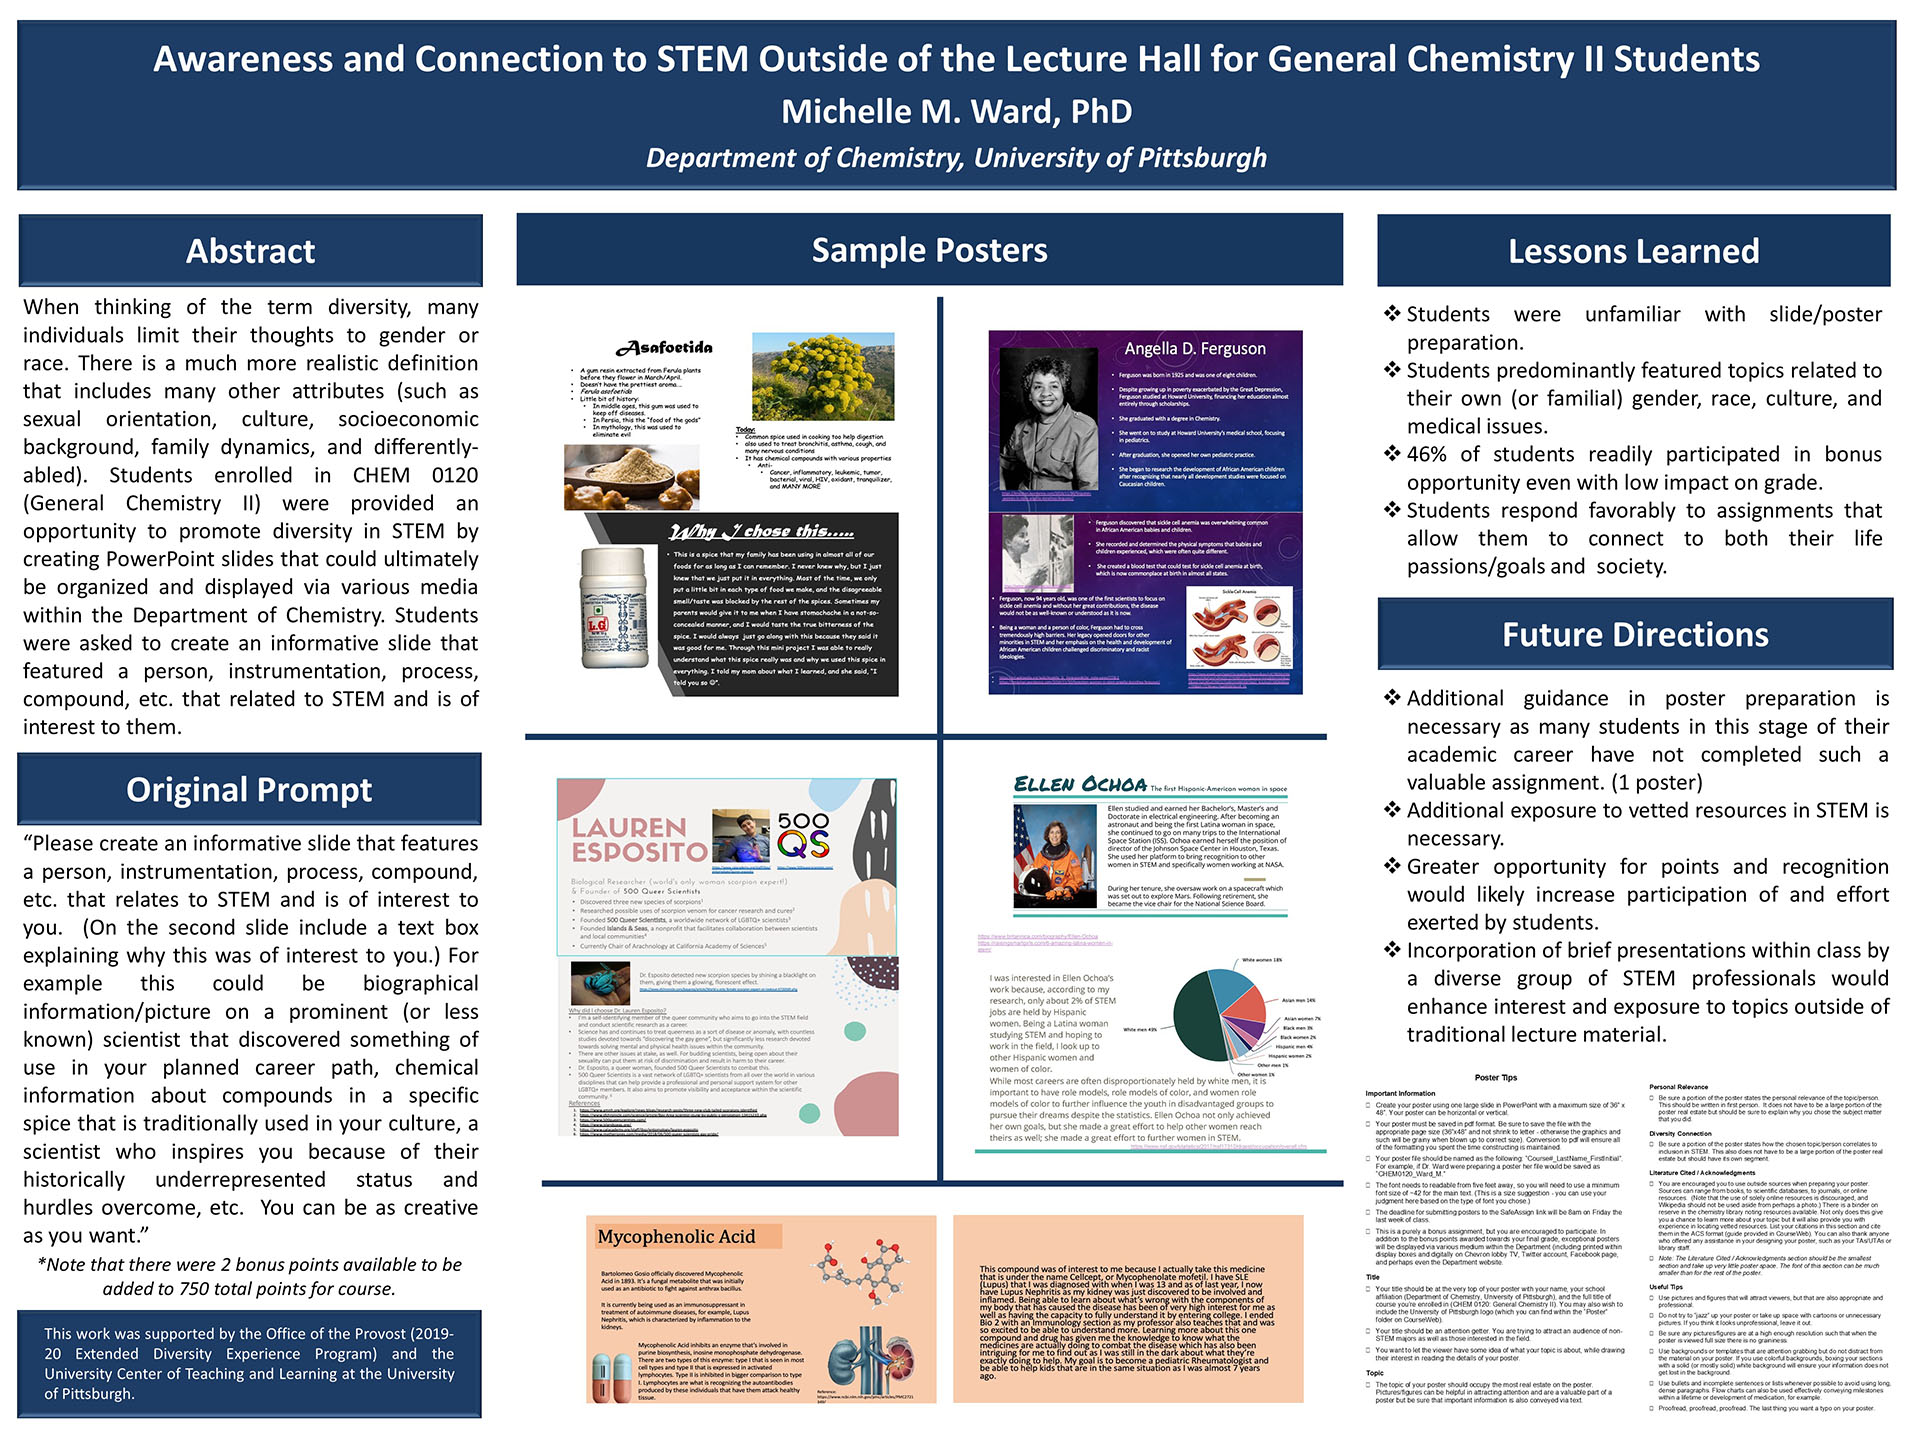 Michelle M. Ward, PhD - Extended Diversity Experience 2020 Poster - Awareness and Connection to STEM Outside of the Lecture Hall for General Chemistry II Students